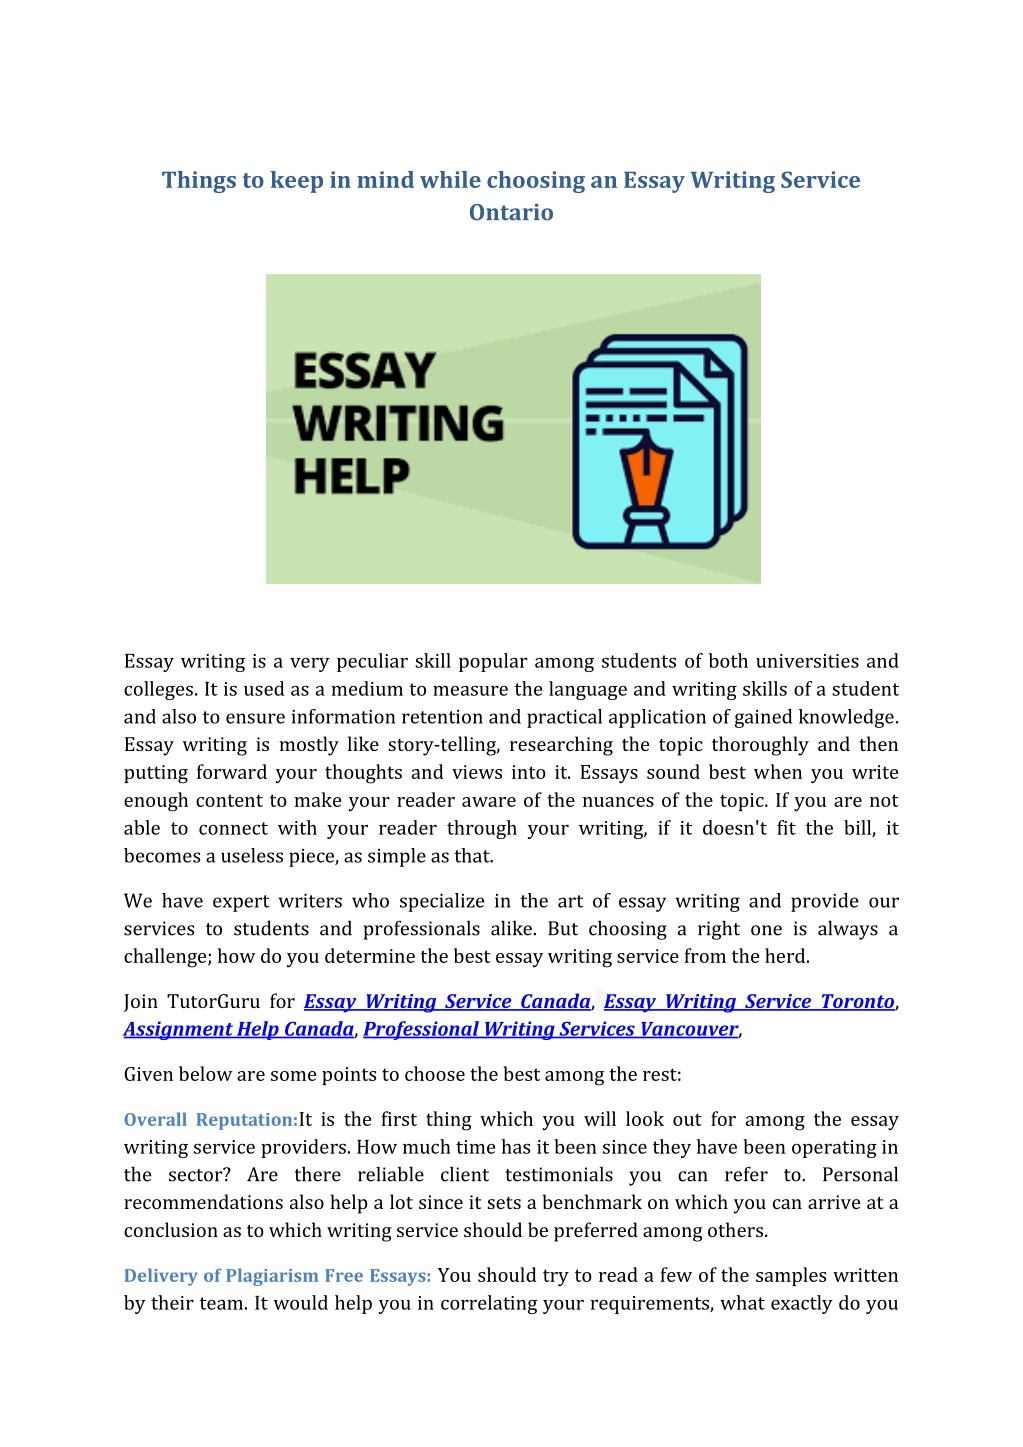 017 Essay Example Free Writing Service Things To Keep In Mind While Choosing An Shocking Draft Online Uk Full